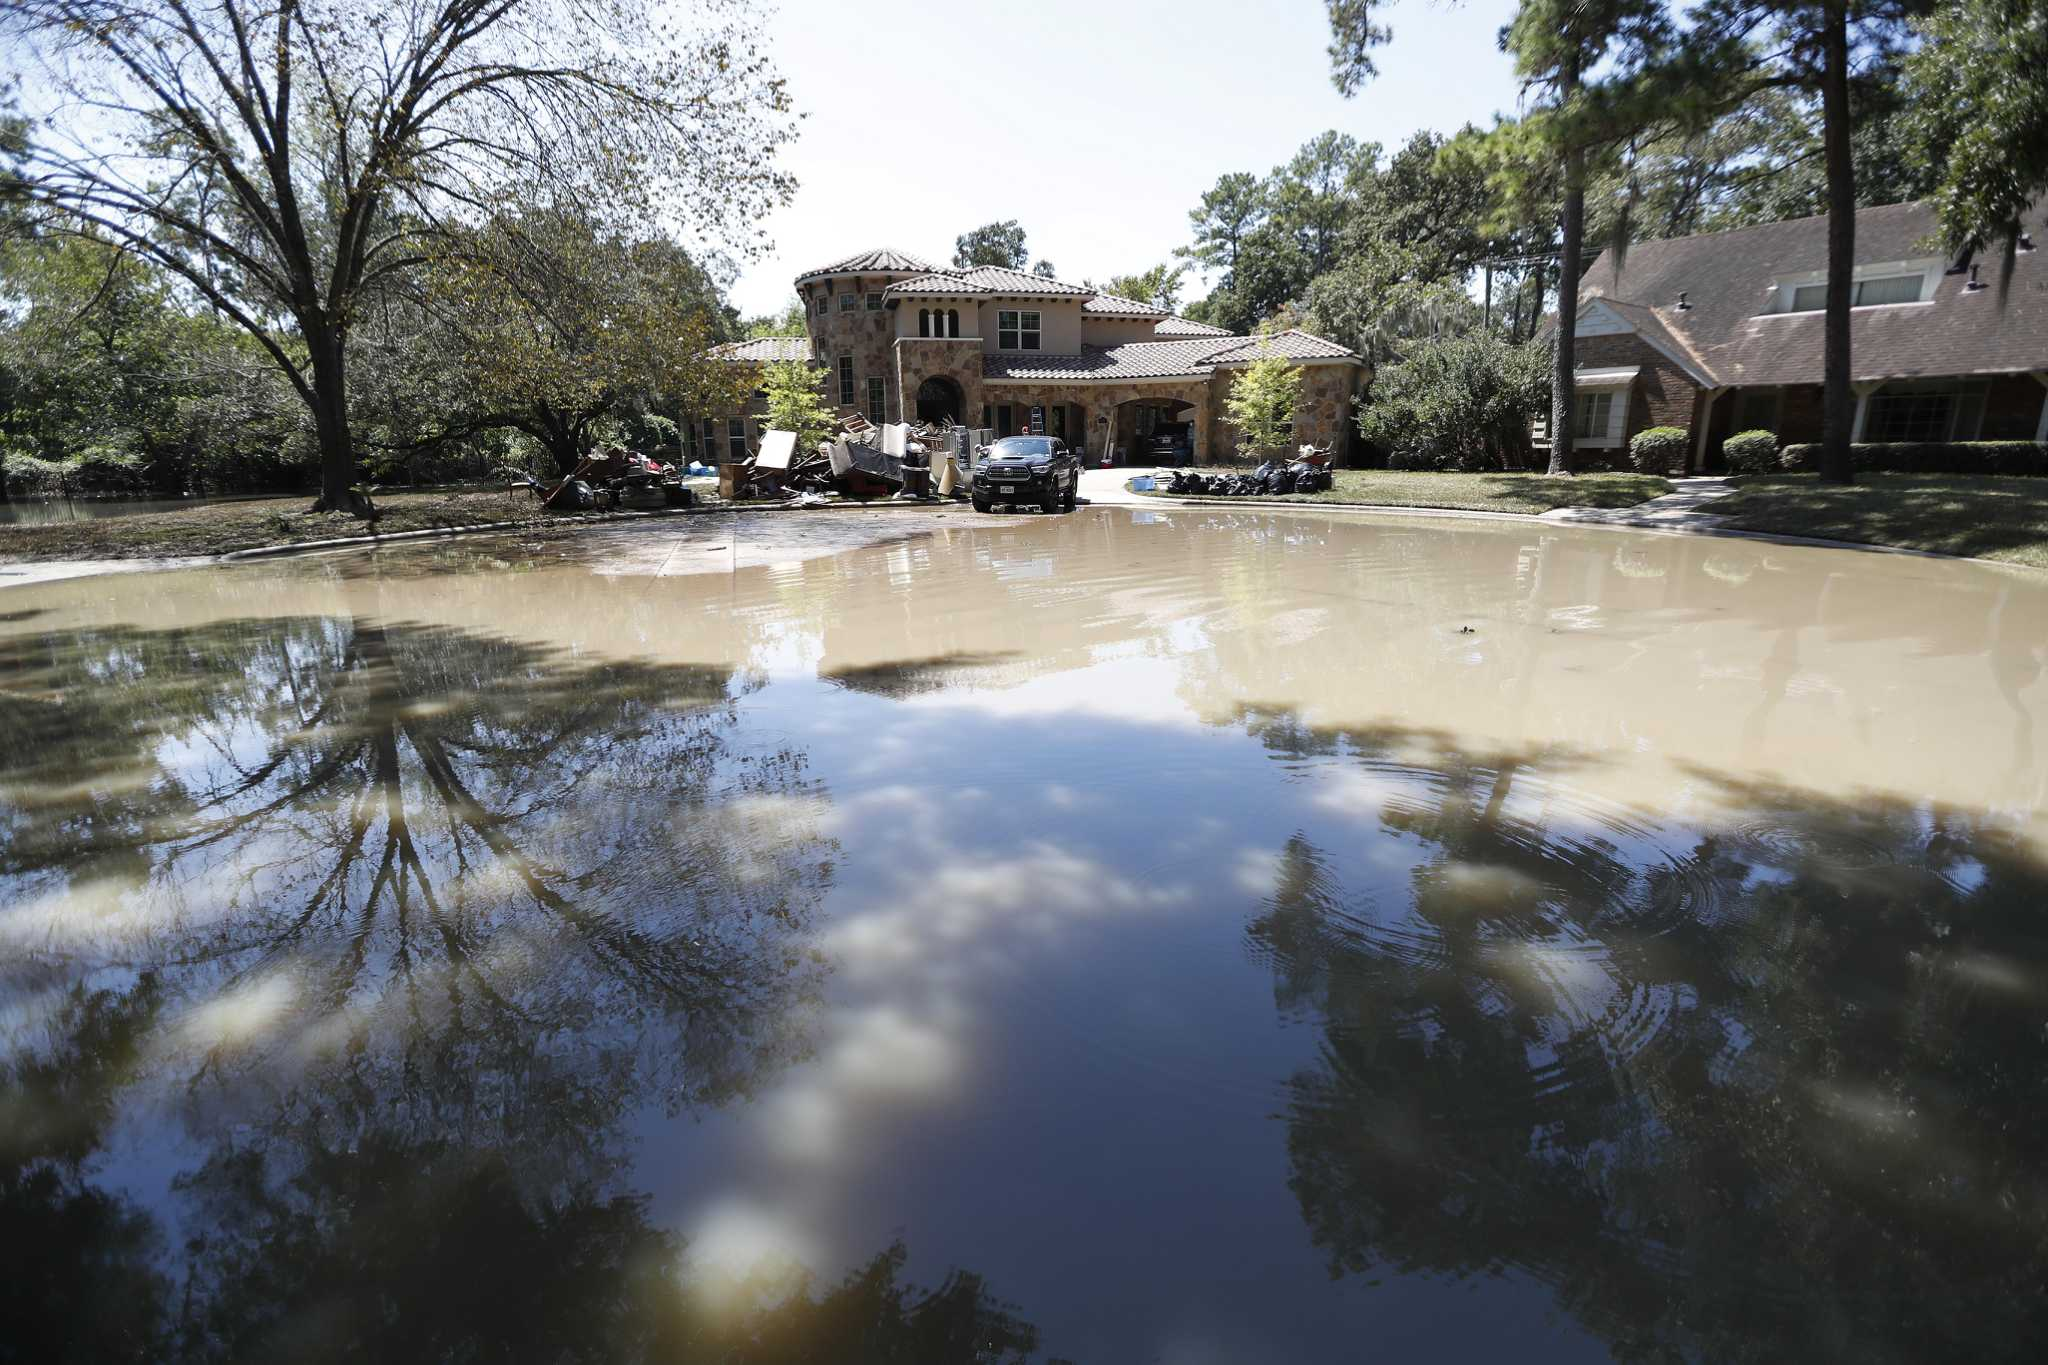 They both sued the Army Corps after Harvey flooding in Houston. So why did only one win?